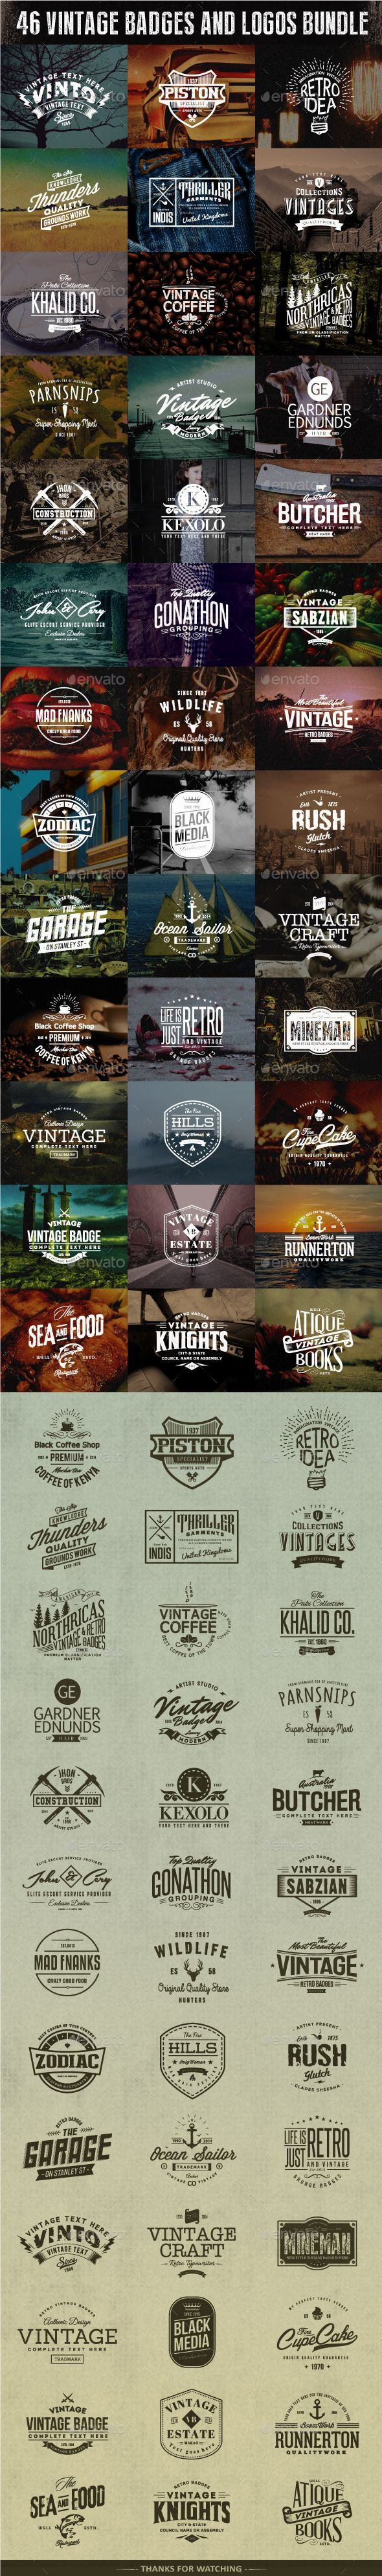 A Bundle of 46 Badges and logos which can be used as your logos, labels, badges, watermark and other identity,branding materials, design proposal, marketing graphics, blog headers, and so much more. #design Download: http://graphicriver.net/item/46-badges-and-logos-bundle/10699586?ref=ksioks